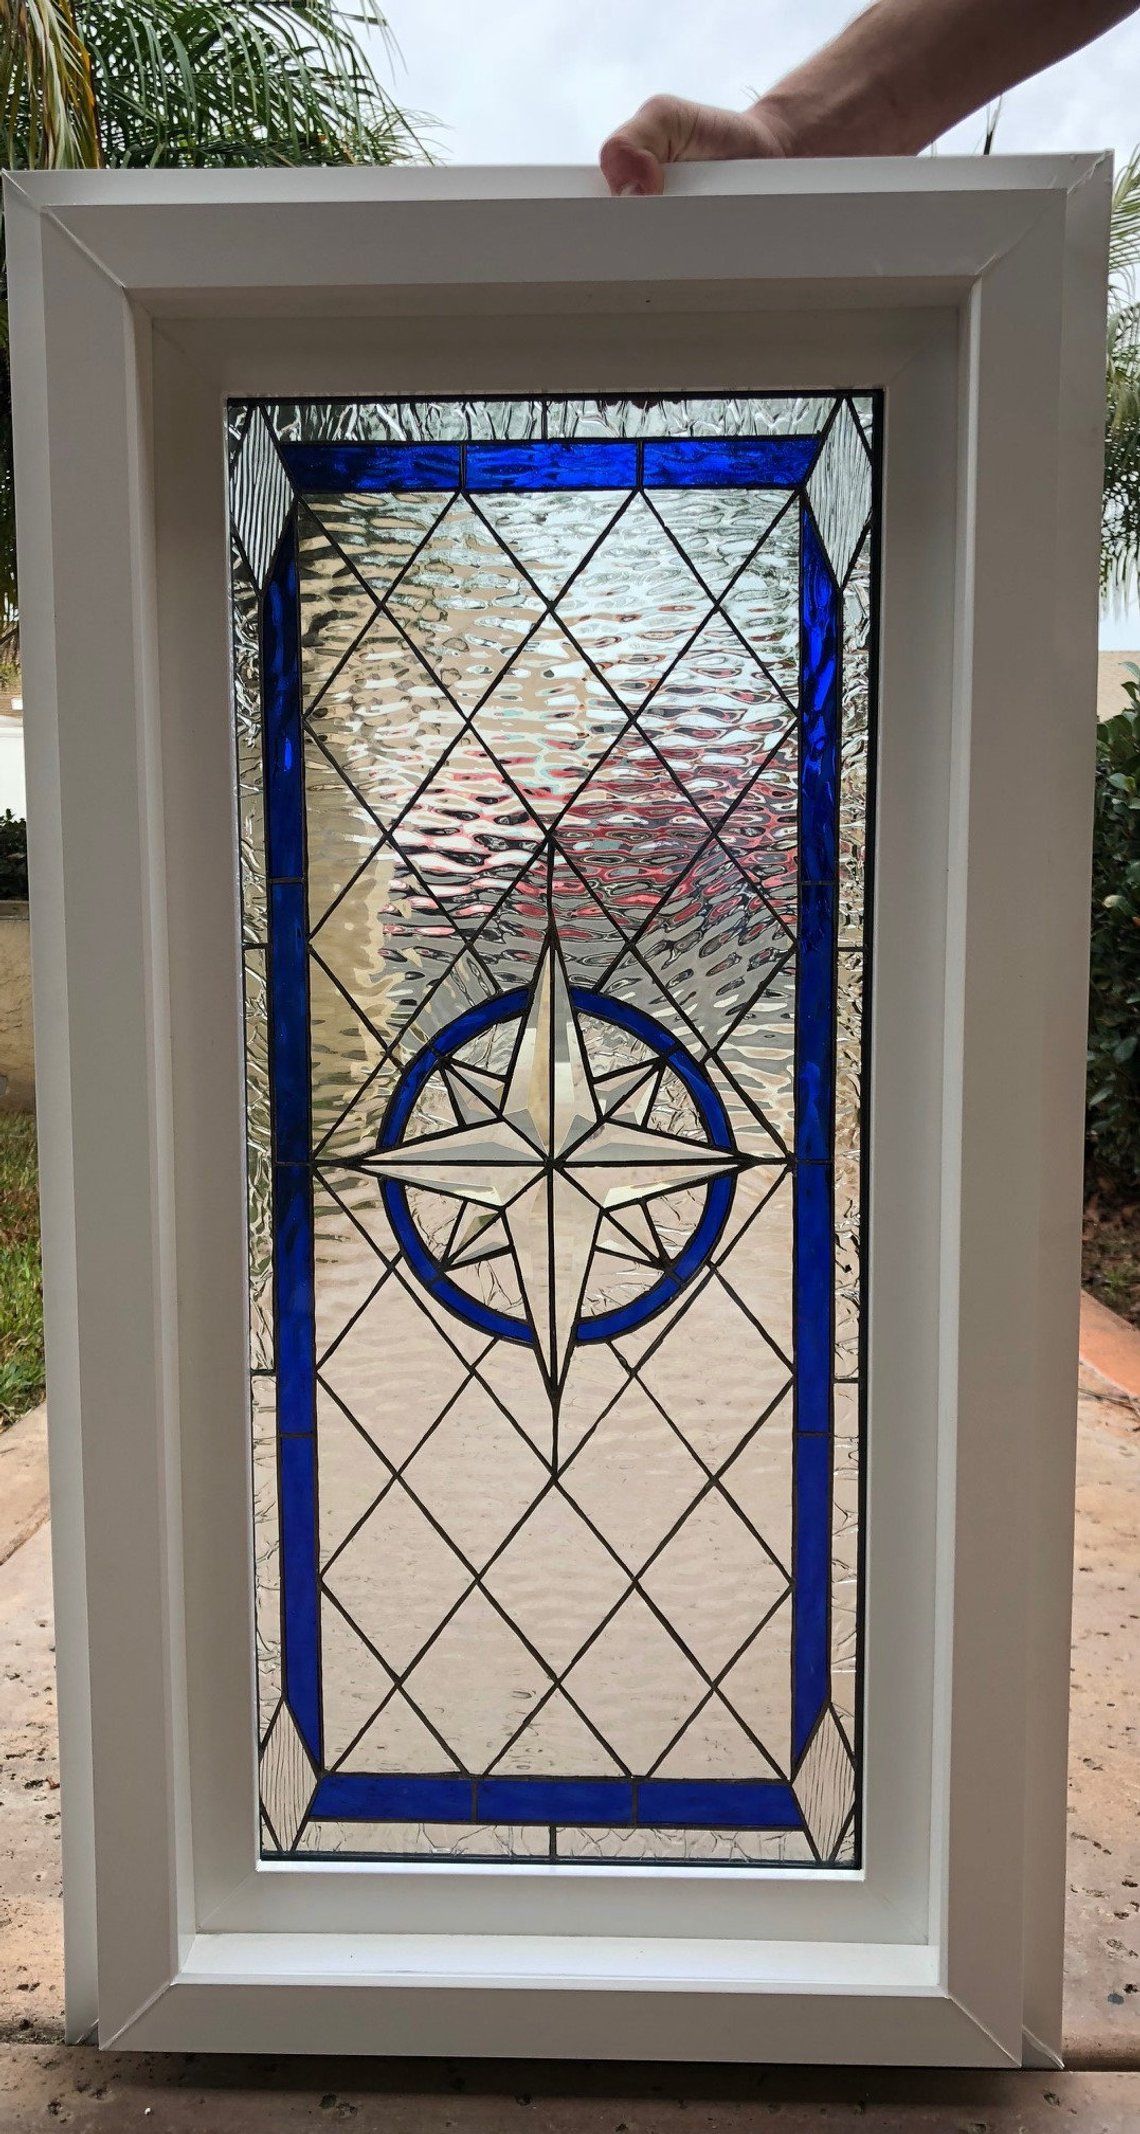 Compass Rose Beveled Leaded Stained Glass Window Insulated In Etsy In 2020 Stained Glass Windows Church Stained Glass Windows Stained Glass Window Panel